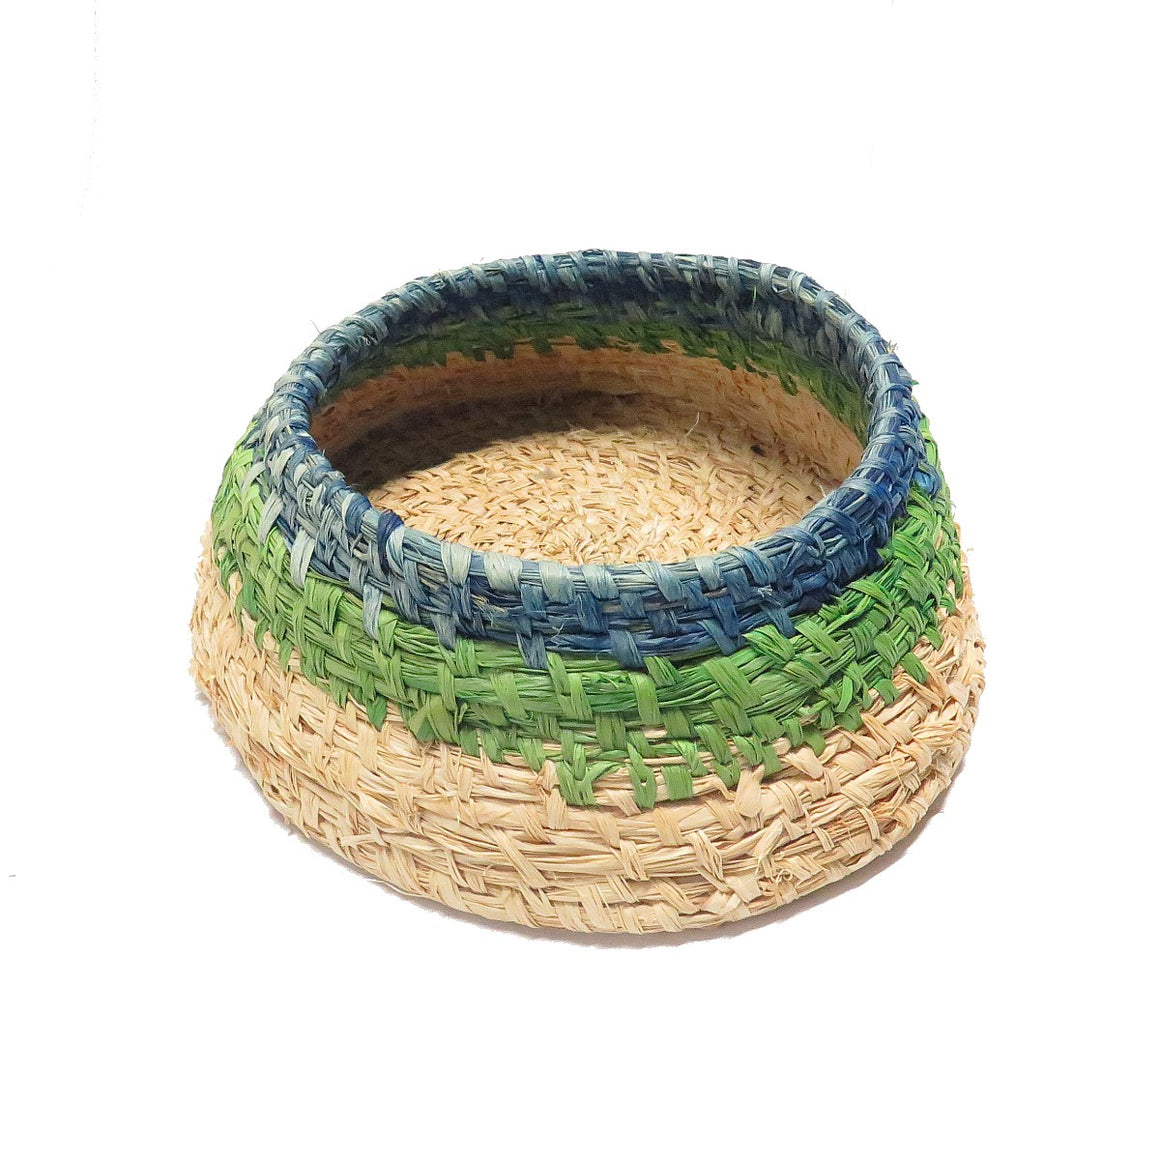 A woven made by indigenous artist Suzanna Armstrongi of Tjanpi Desert Weavers. It is made of dried grasses and raffia in blue, green and natural